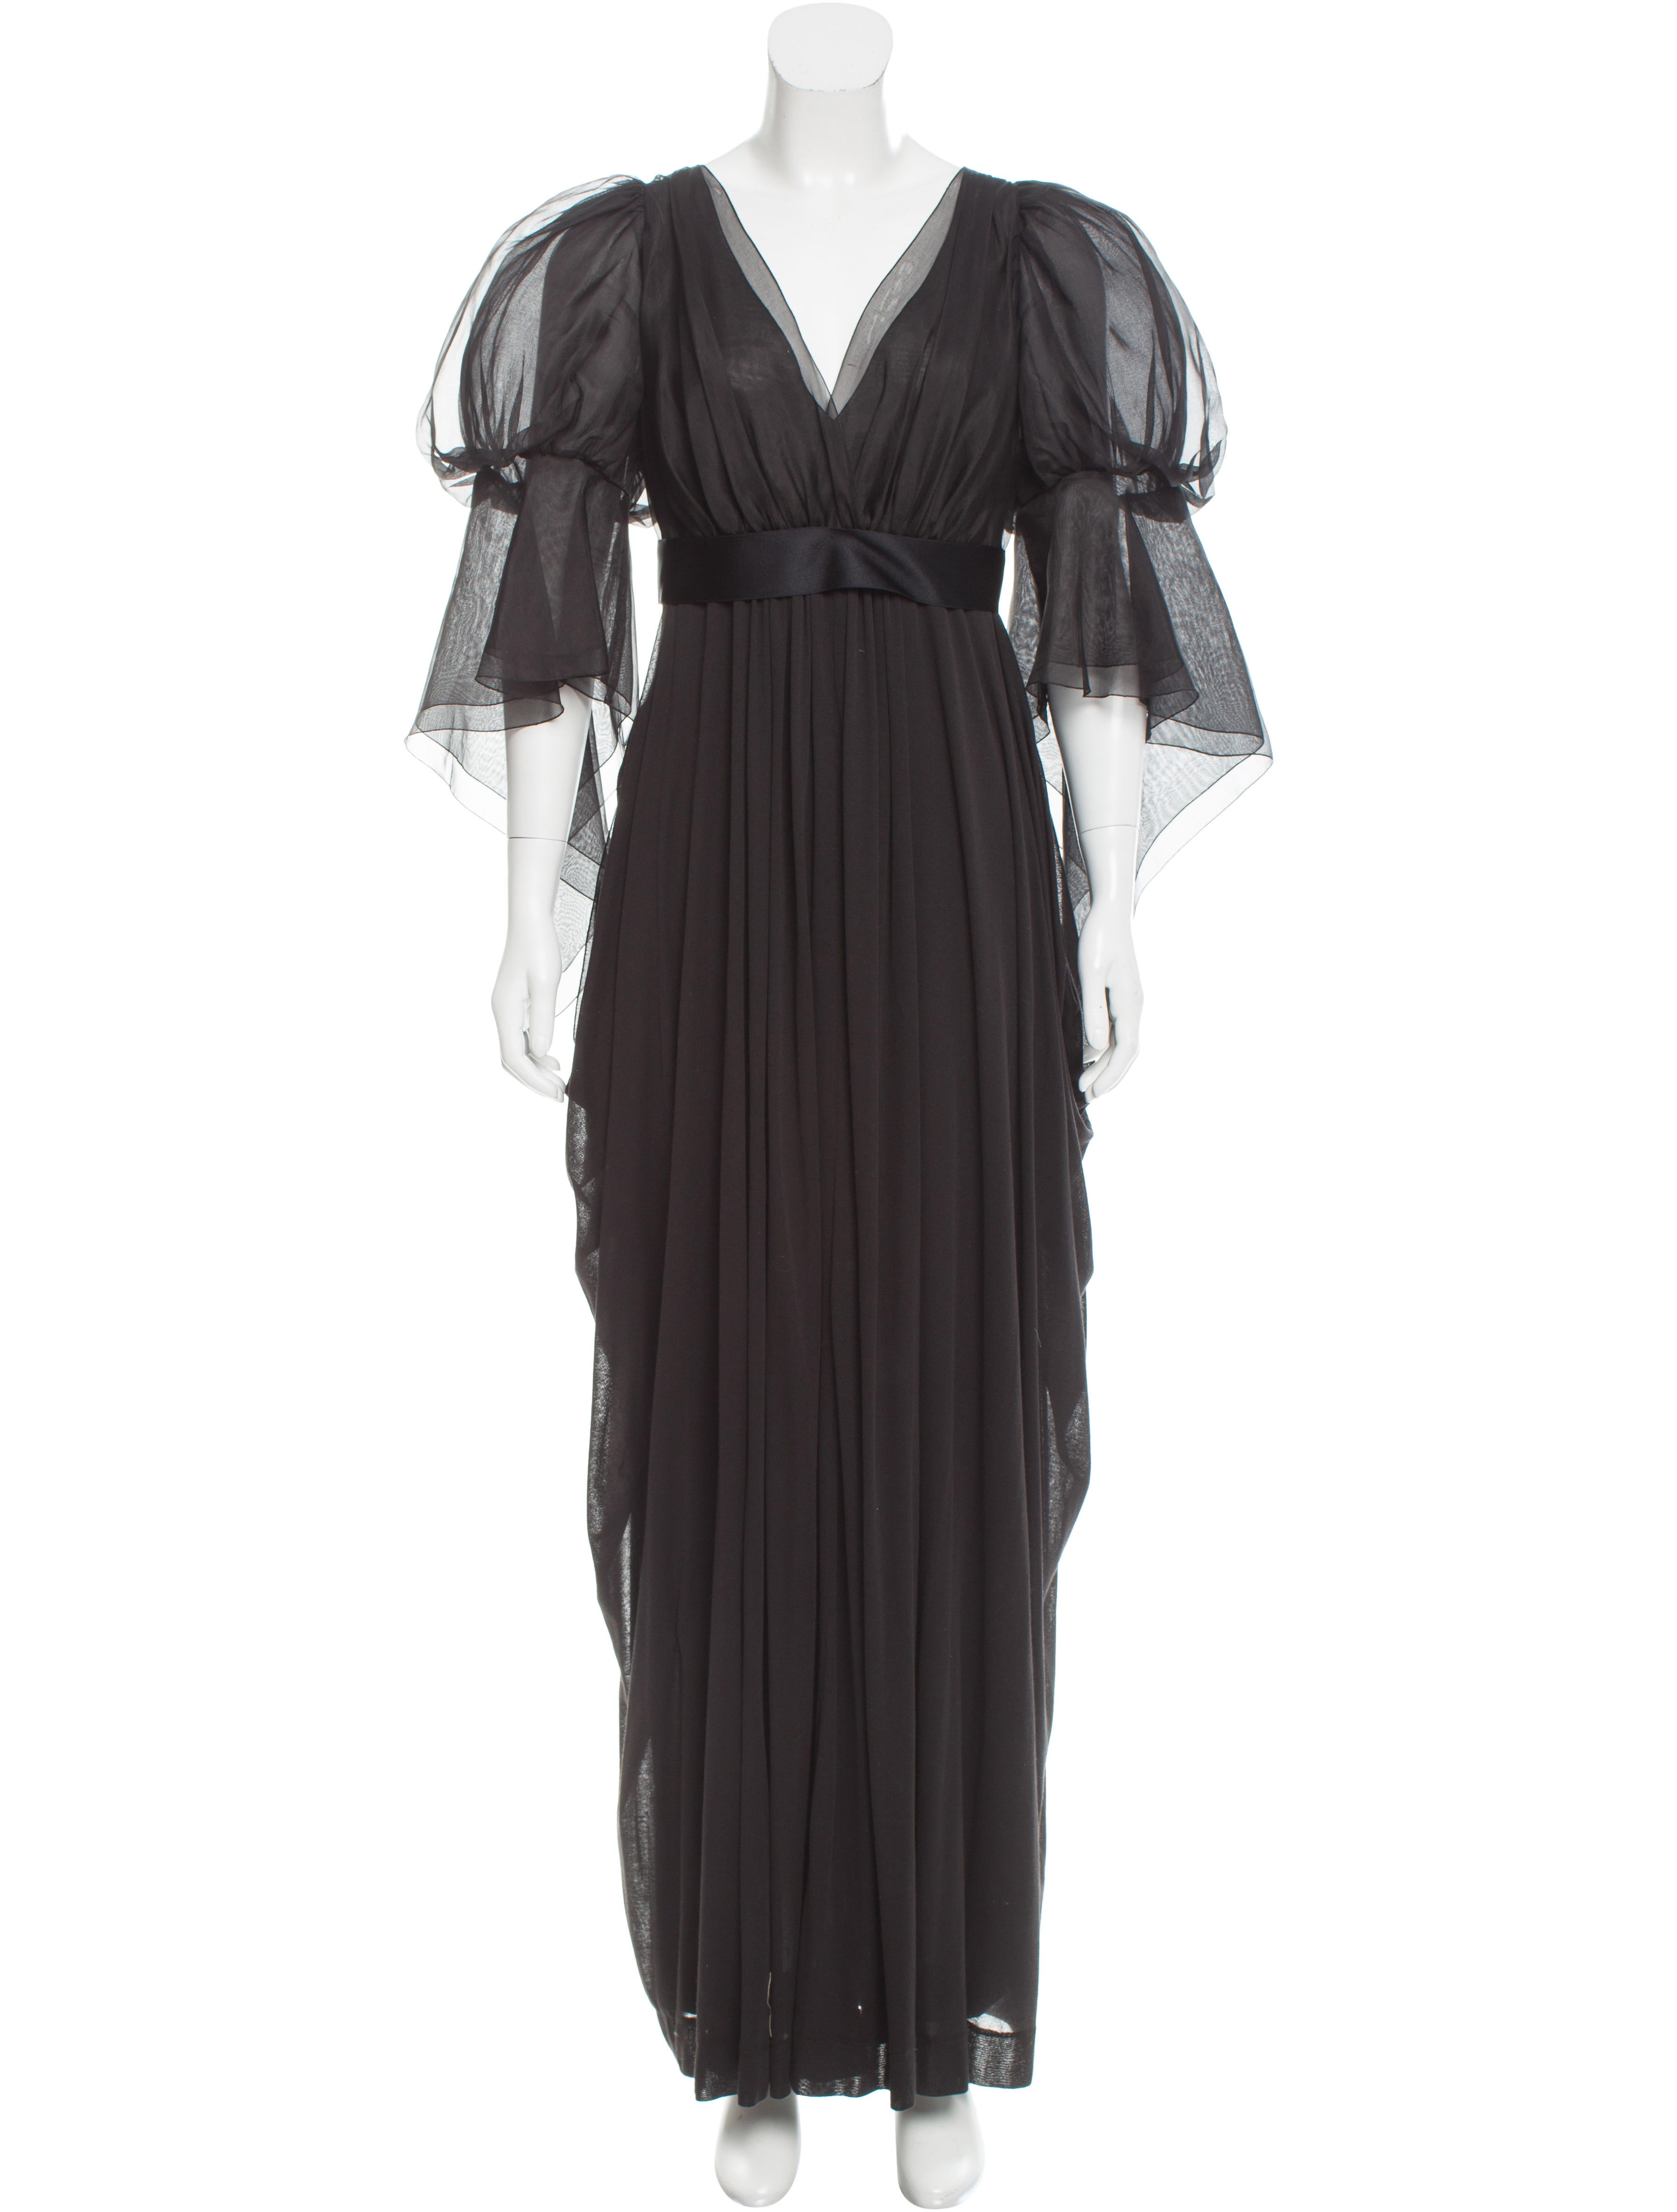 Chanel Belted Evening Dress - Clothing - CHA165946 | The RealReal